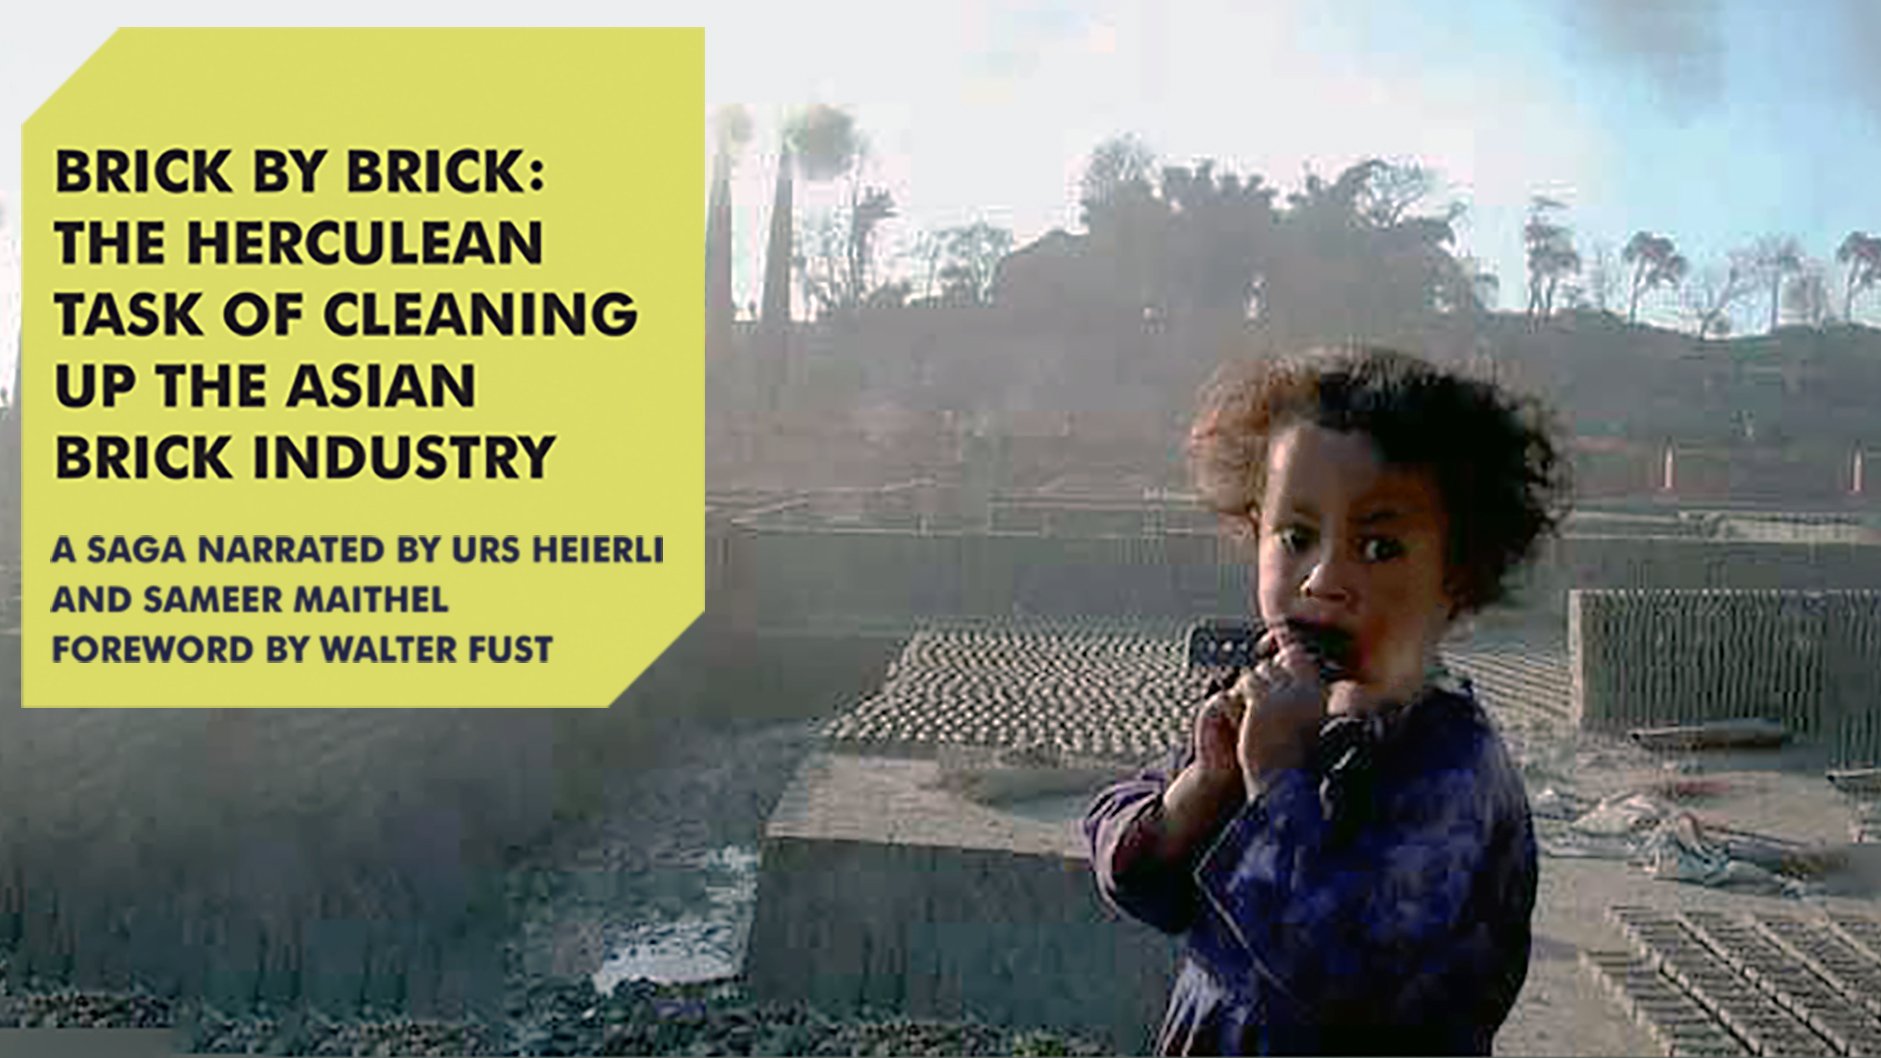 Brick By Brick : The herculean task of cleaning up the Asian brick industry